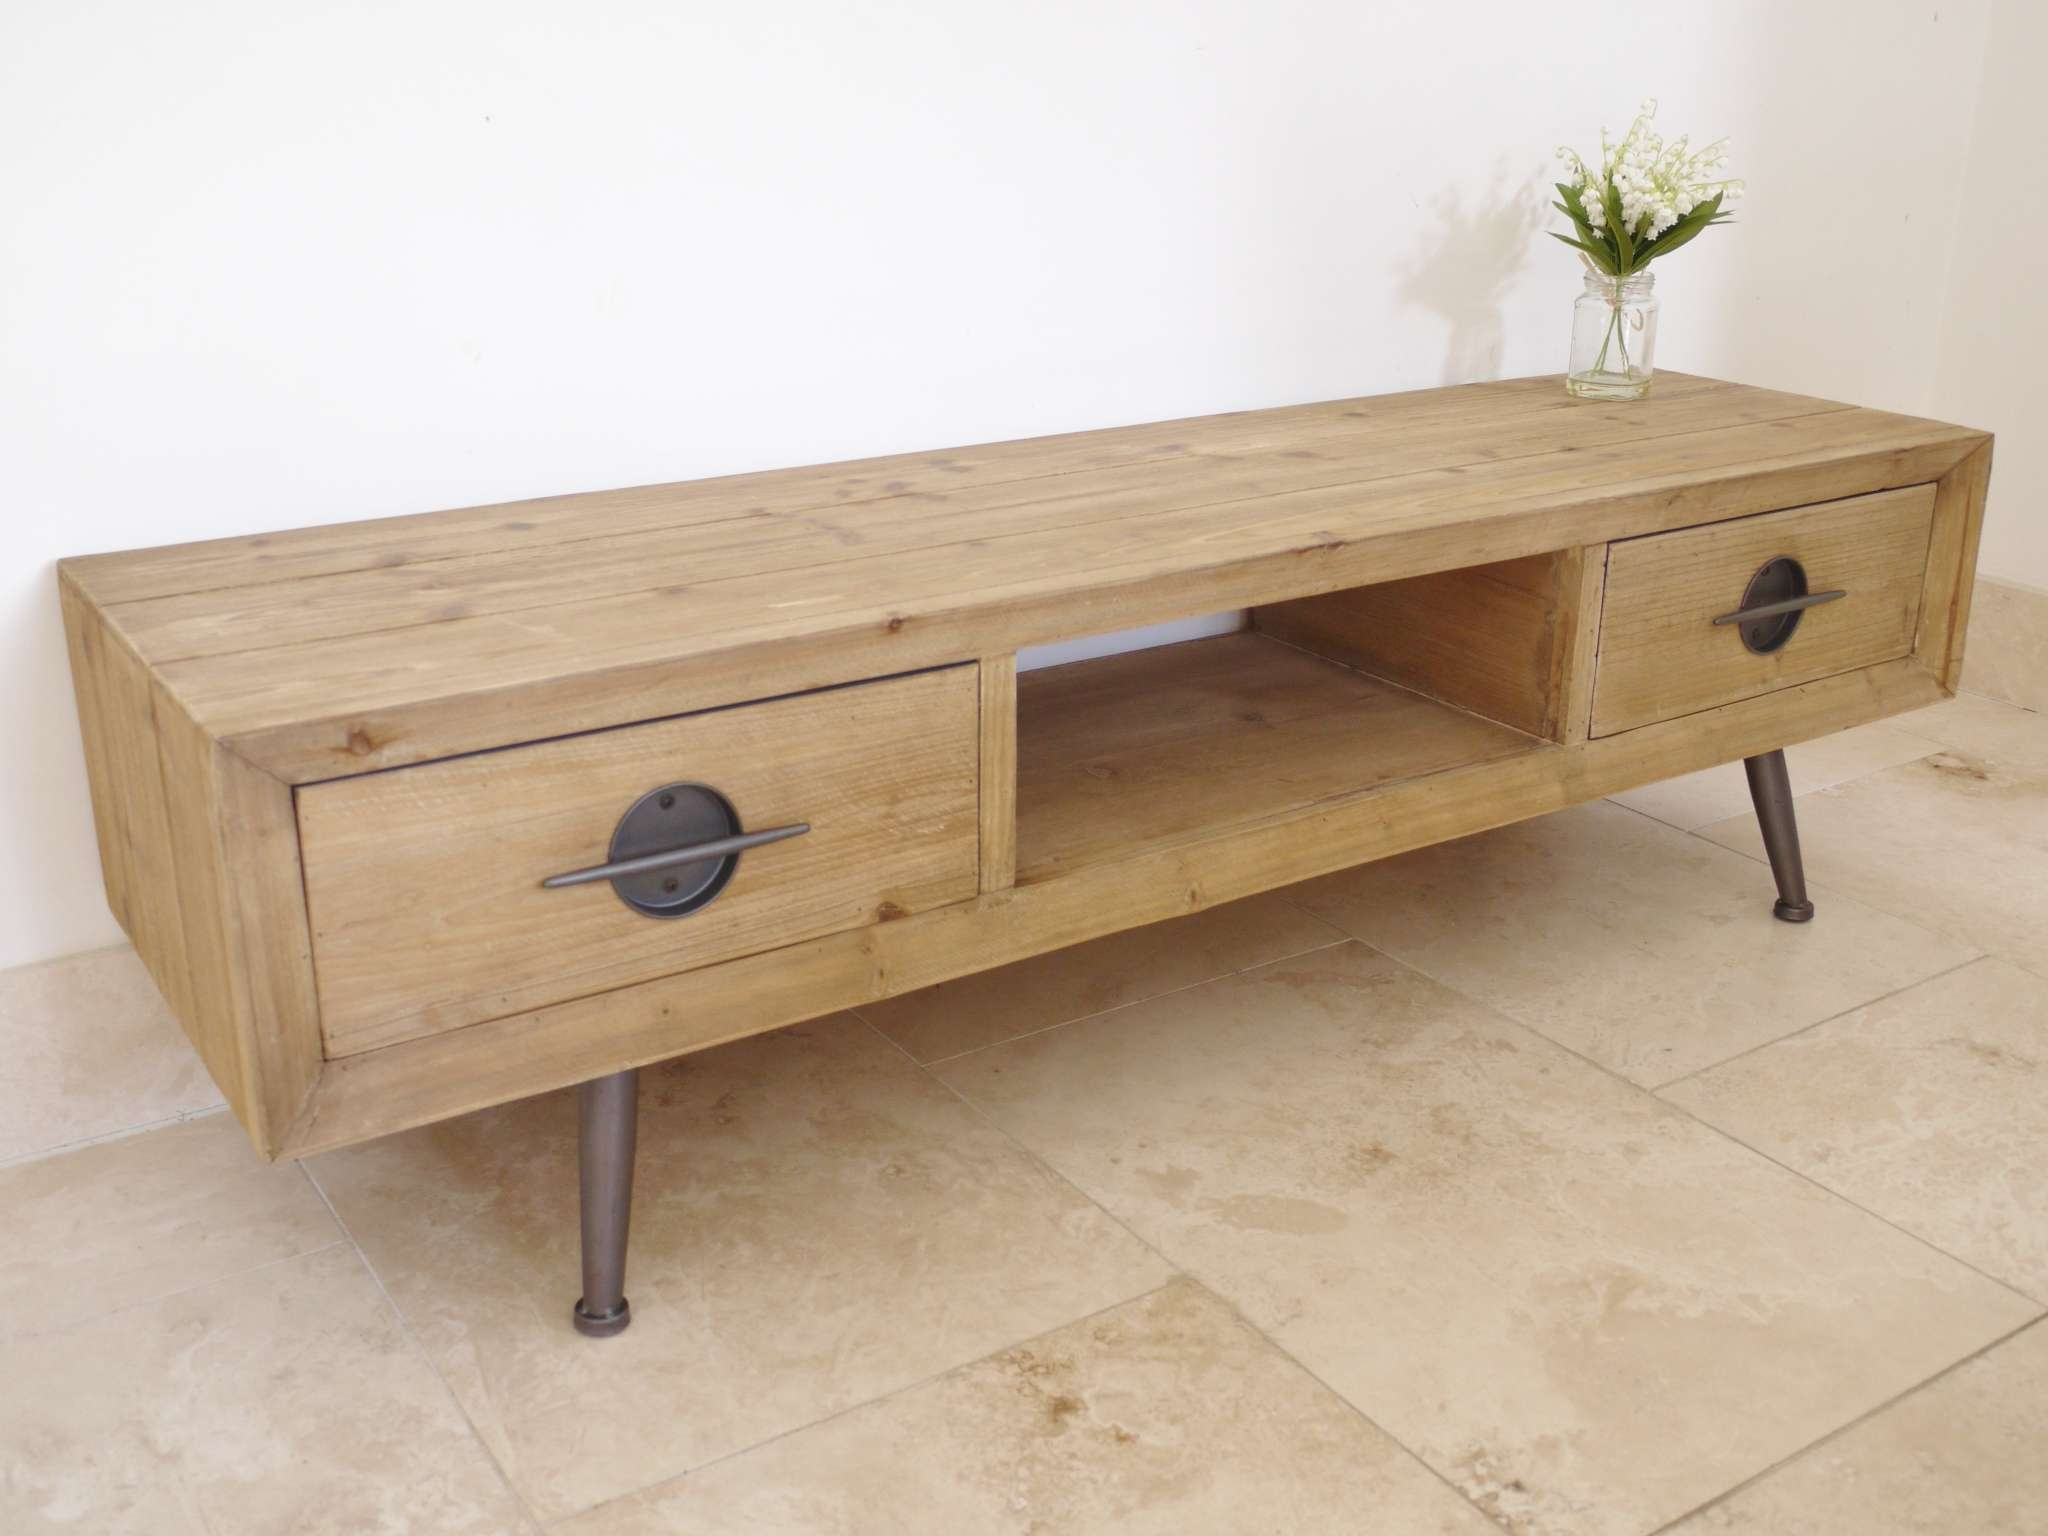 Tv Units | Tv Stands | Tv Cabinets For Sale Uk – Elm Home And Garden Within Vintage Style Tv Cabinets (View 20 of 20)